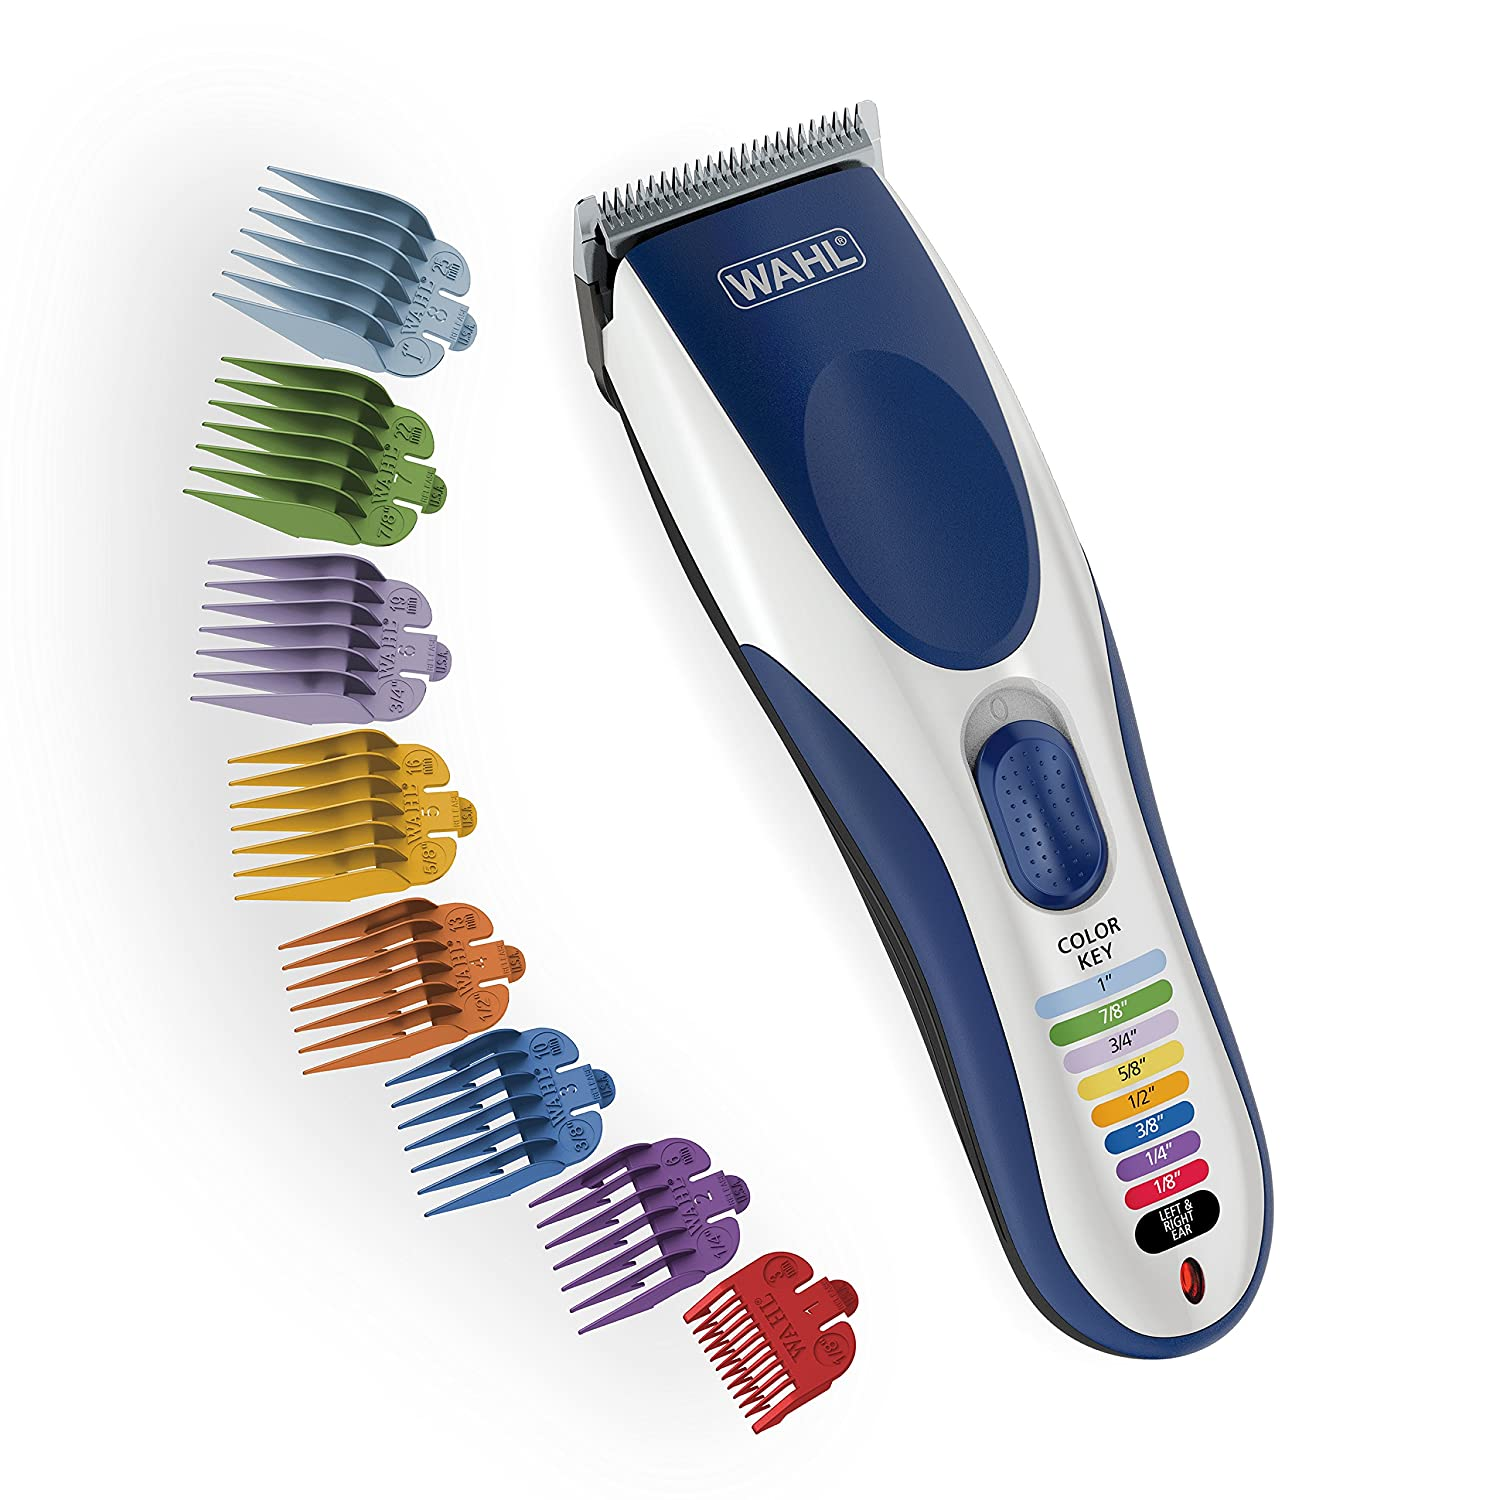 best hair clippers for men wahl color pro, best hair clippers